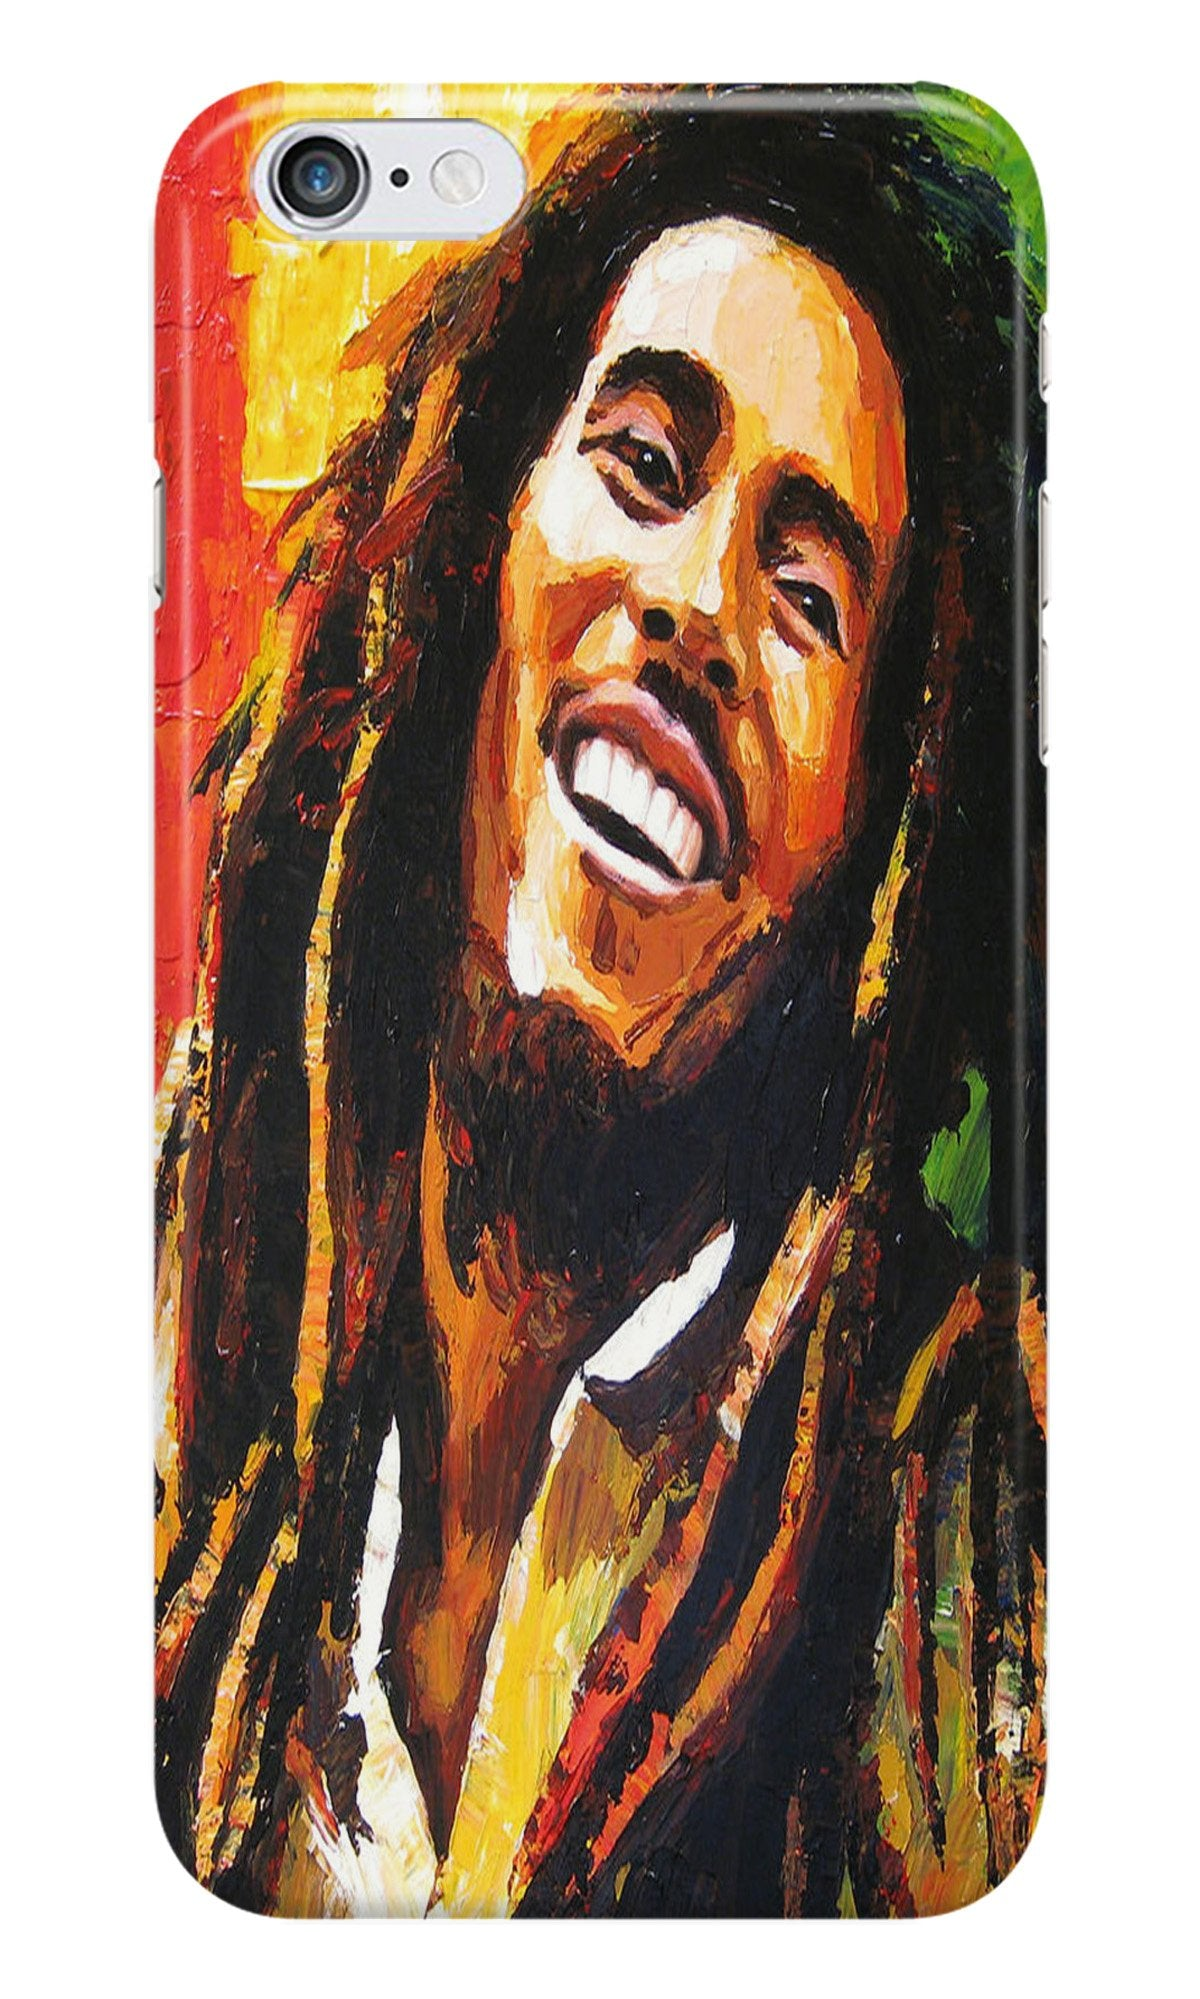 Bob marley Case for Iphone 6/6S (Design No. 295)